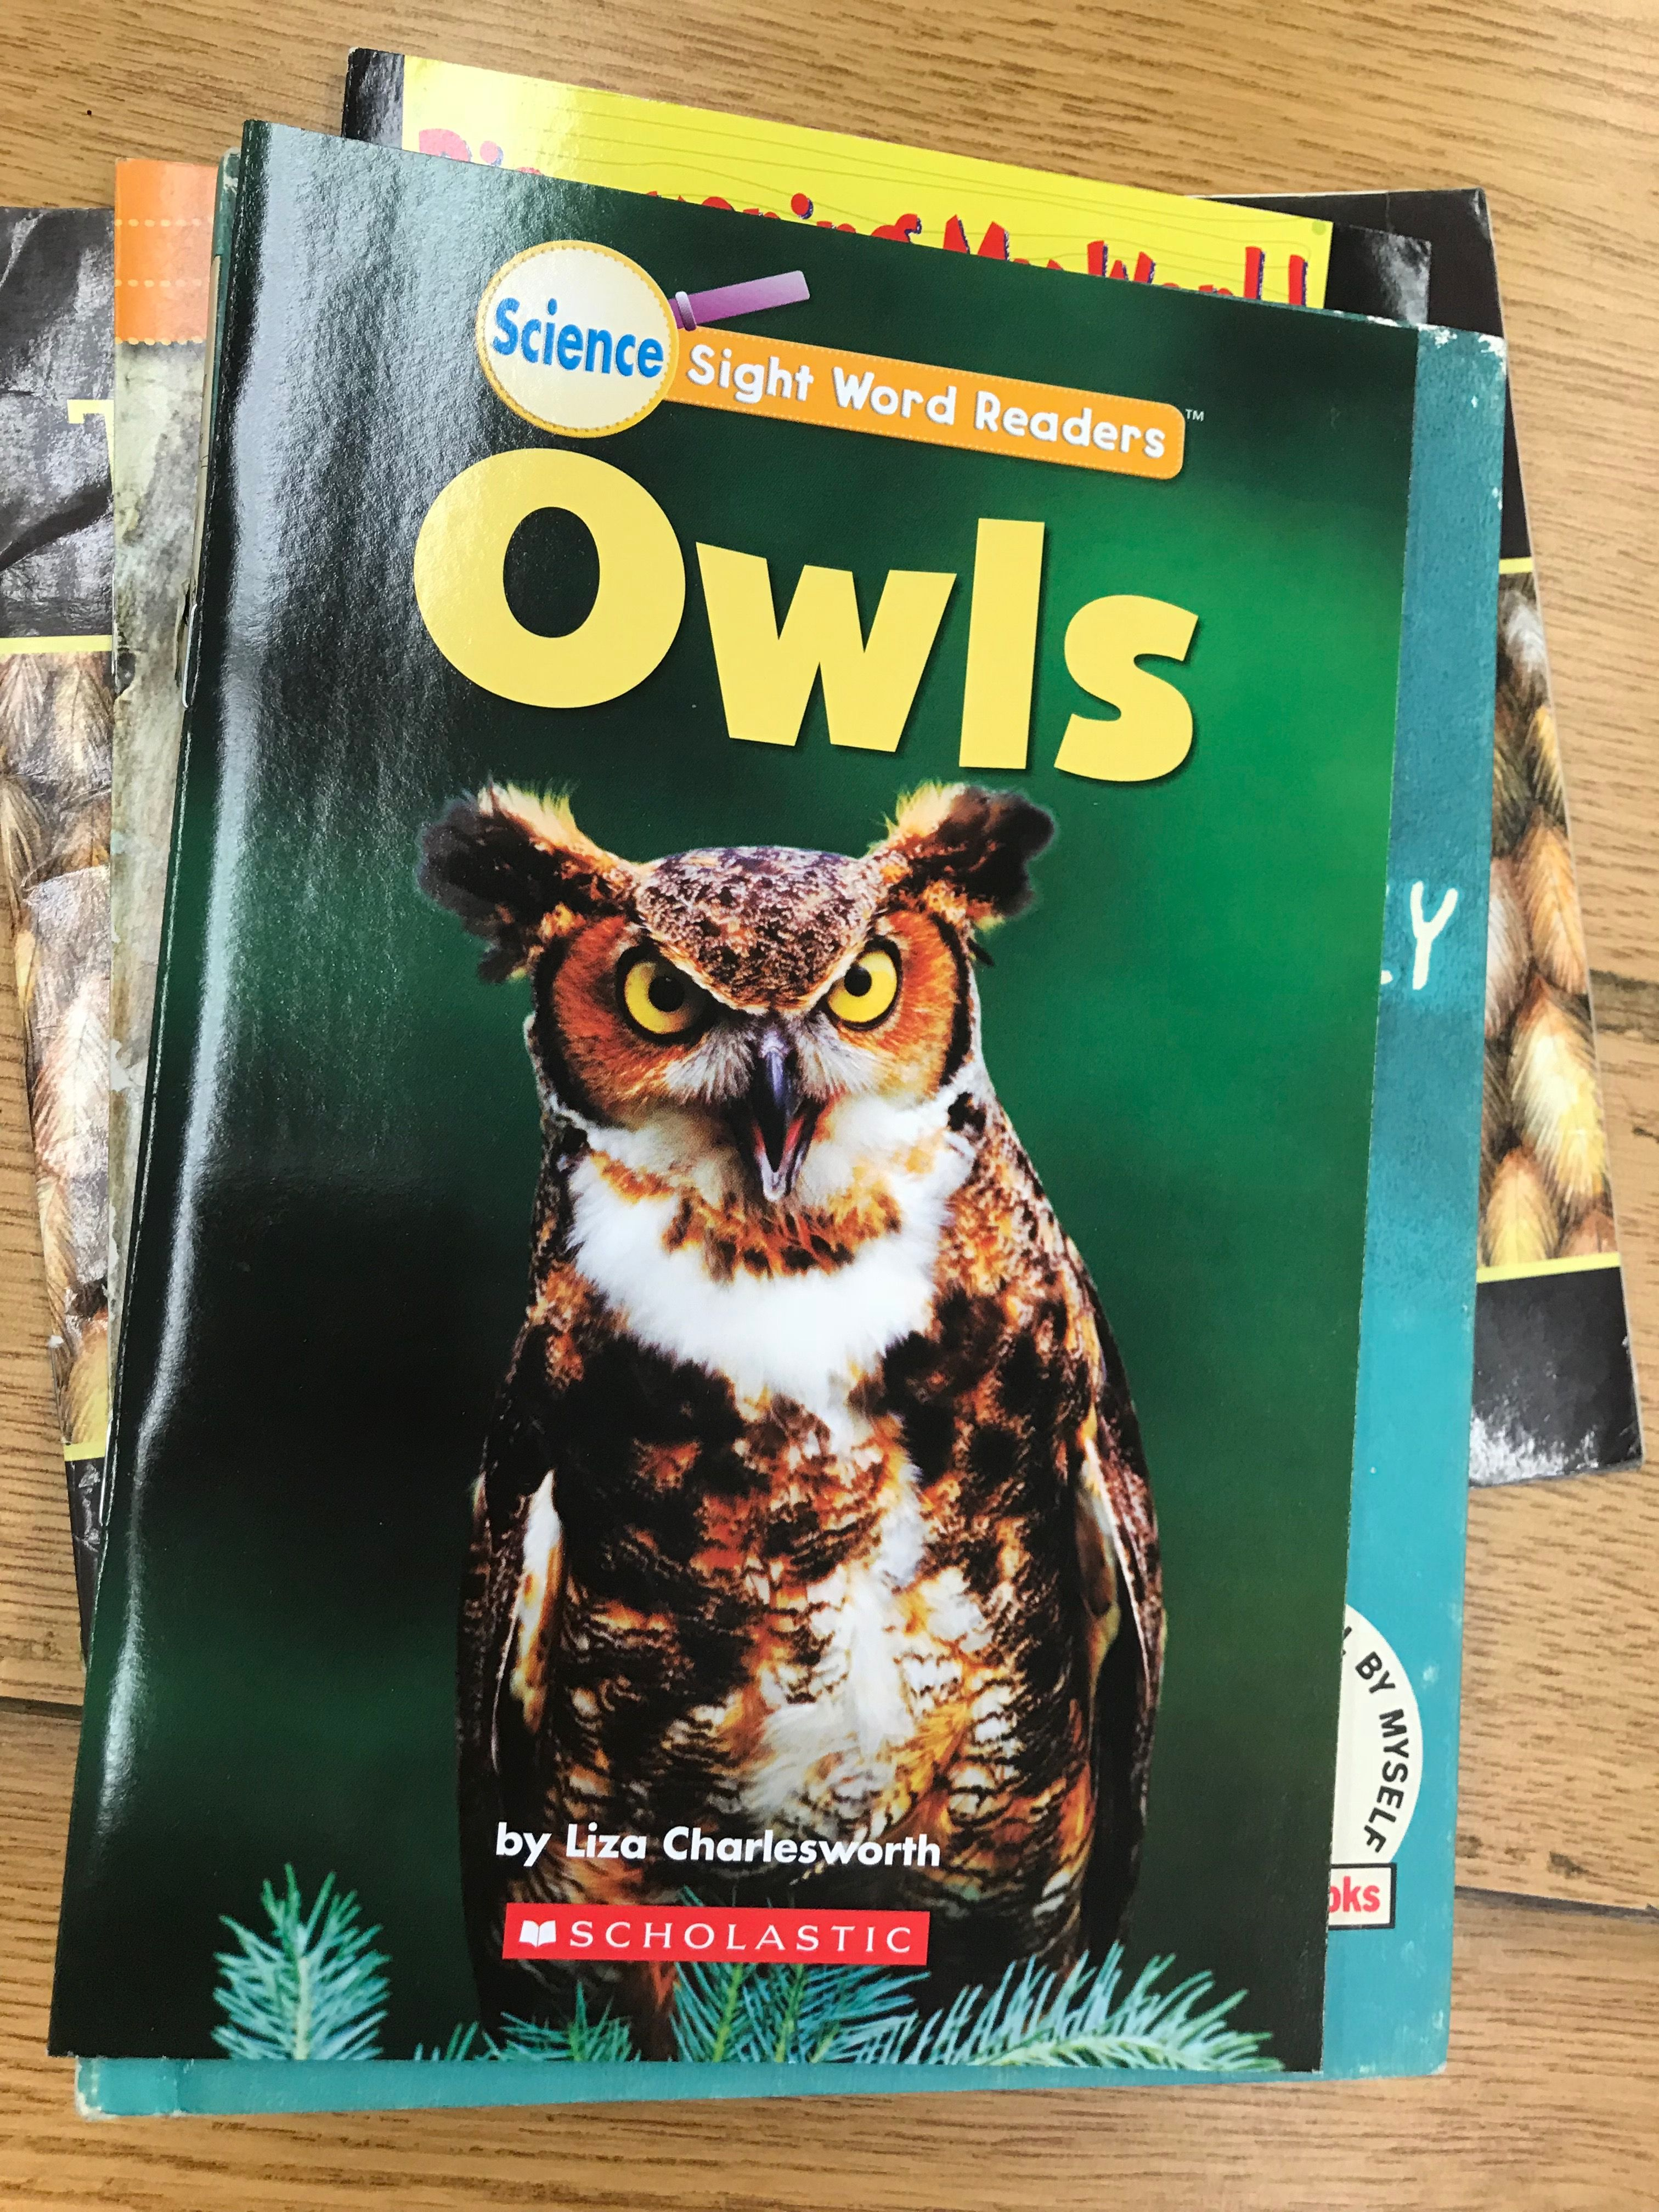 Pin by janet delphine on Owl Books   Owl books, Owl theme ...